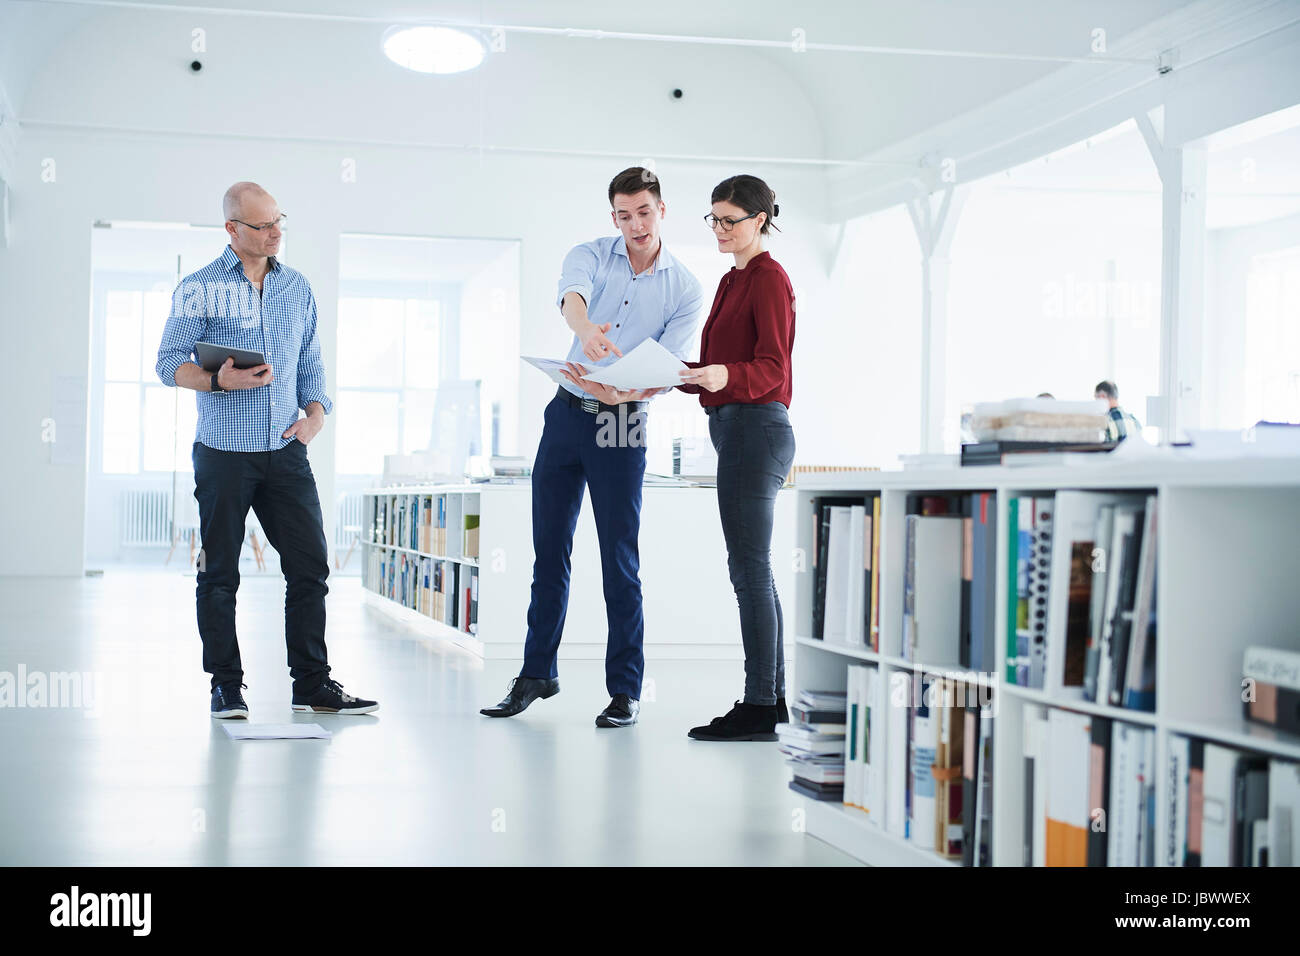 Colleagues discussing paperwork in open plan office - Stock Image